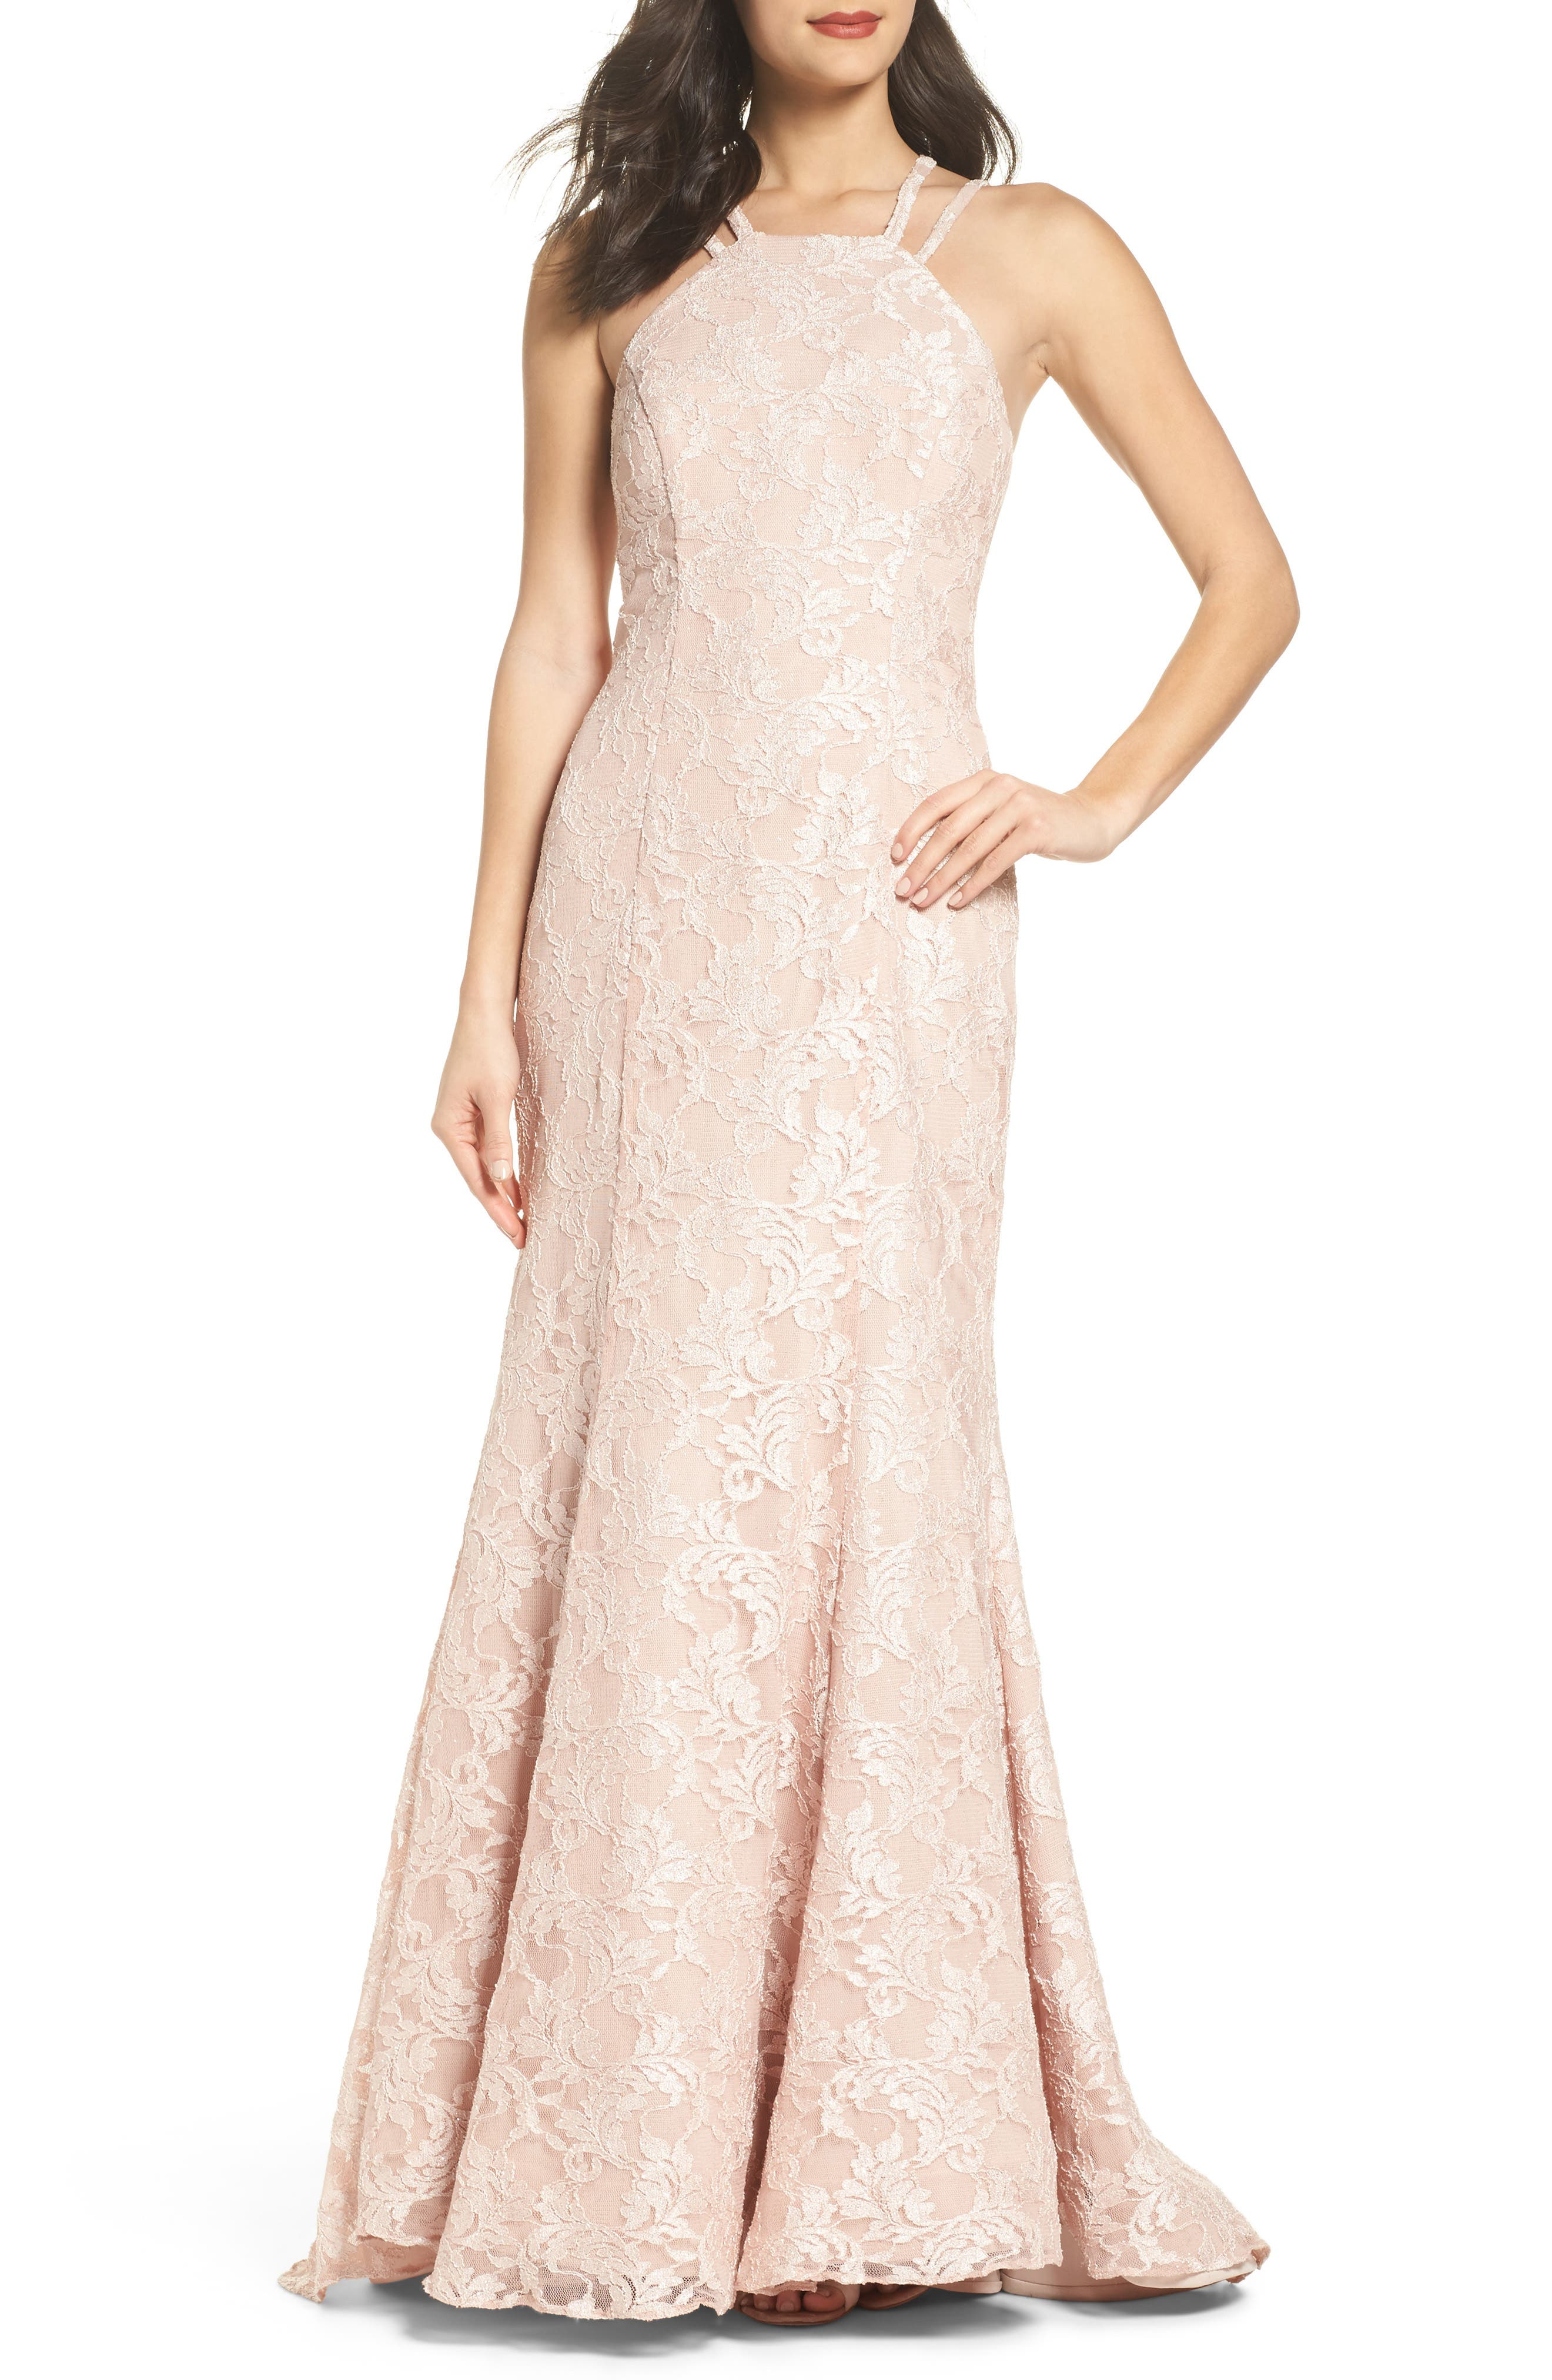 Strappy Lace Mermaid Gown,                         Main,                         color, Blush / Nude